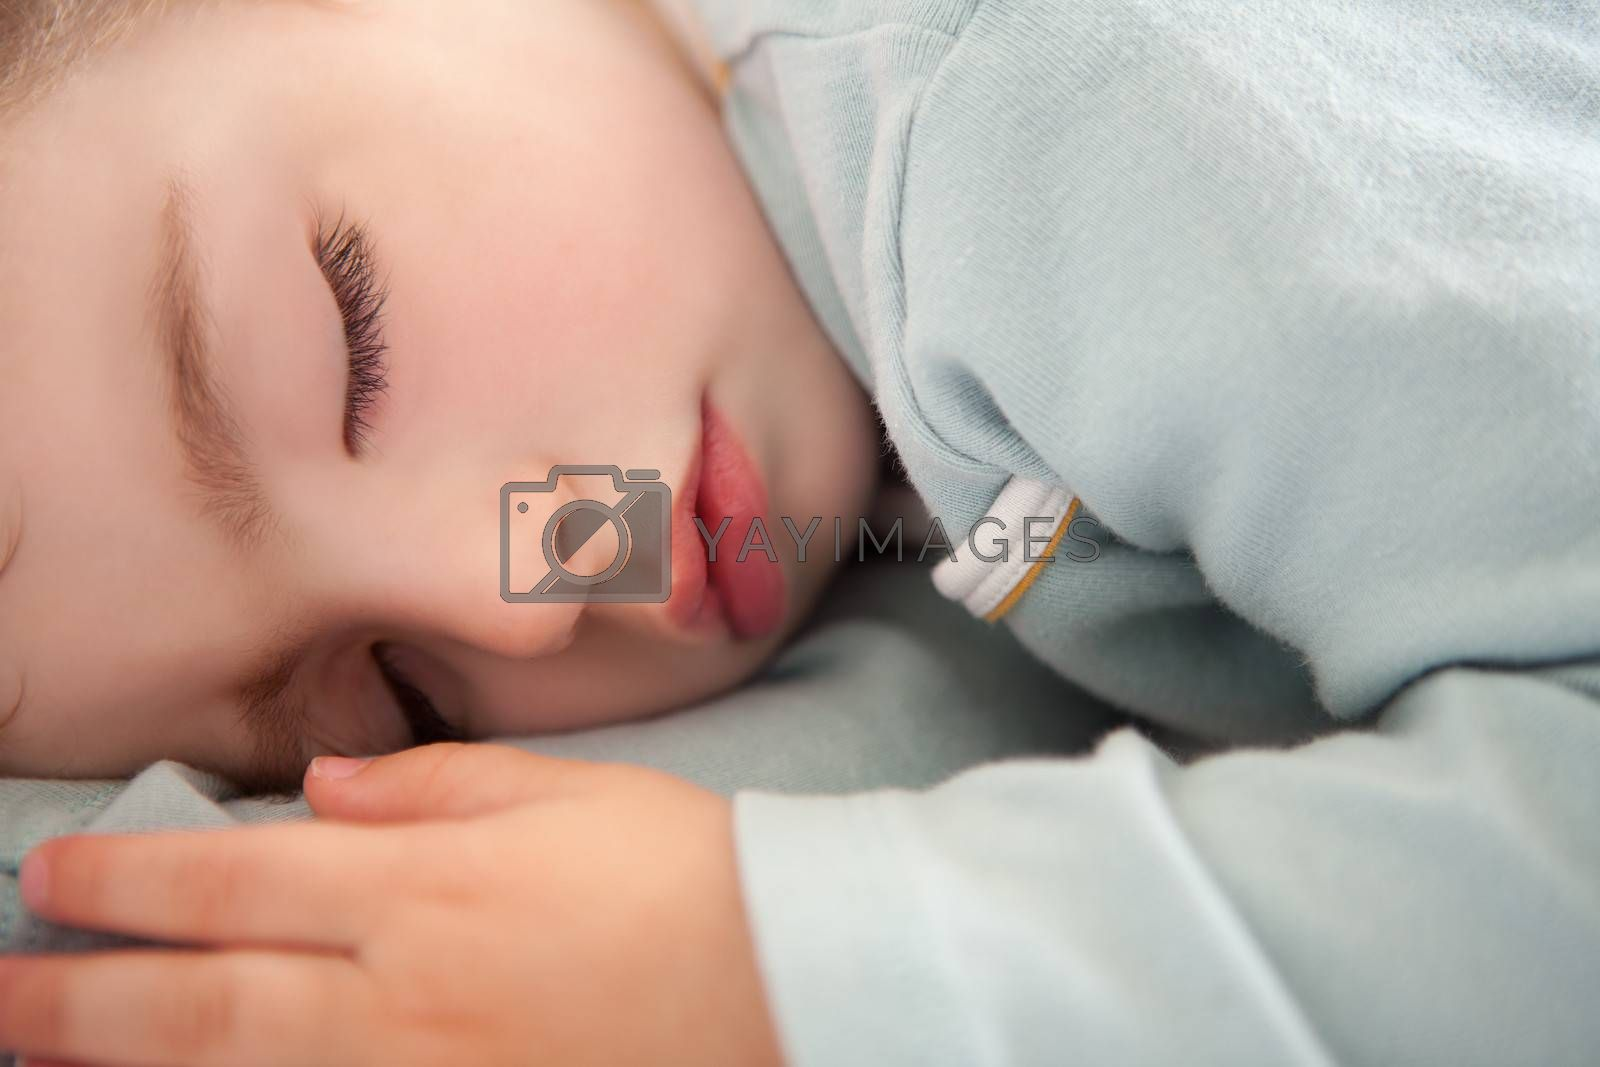 baby toddler sleeping closed eyes relaxed in soft blue